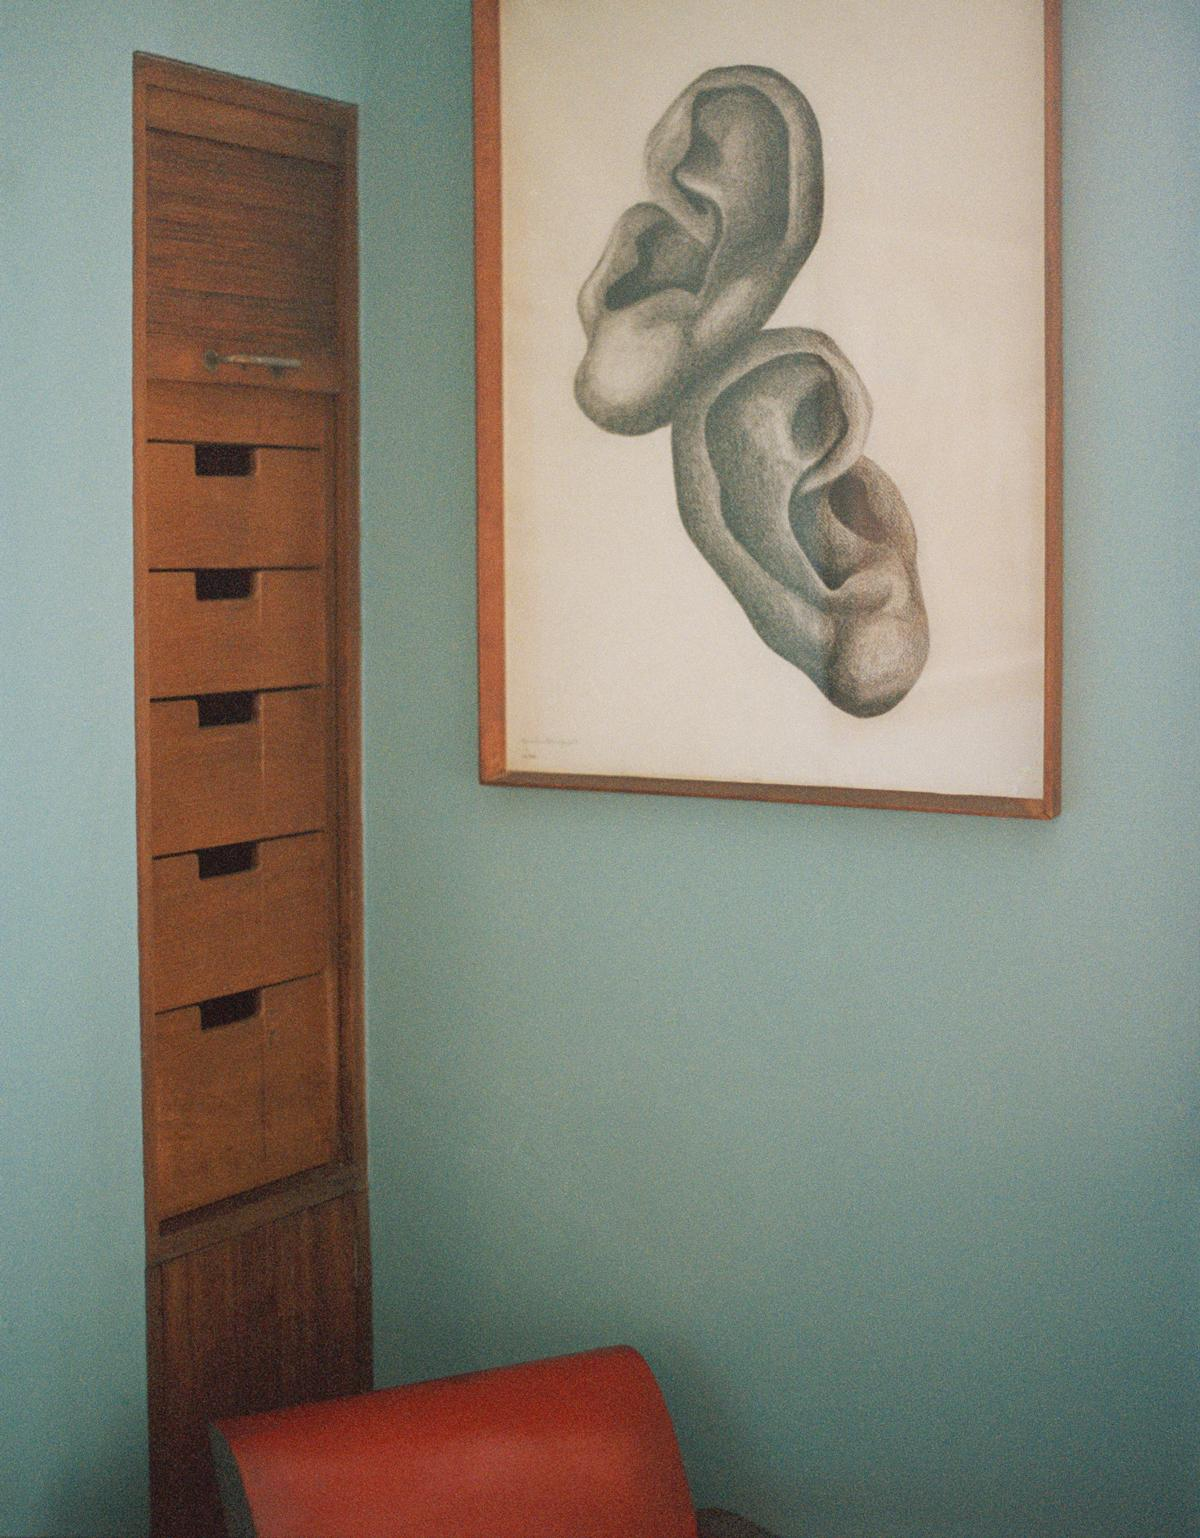 Ears, by Ursula Goldfinger, 1938, Willow Road Studio Frith exhibition